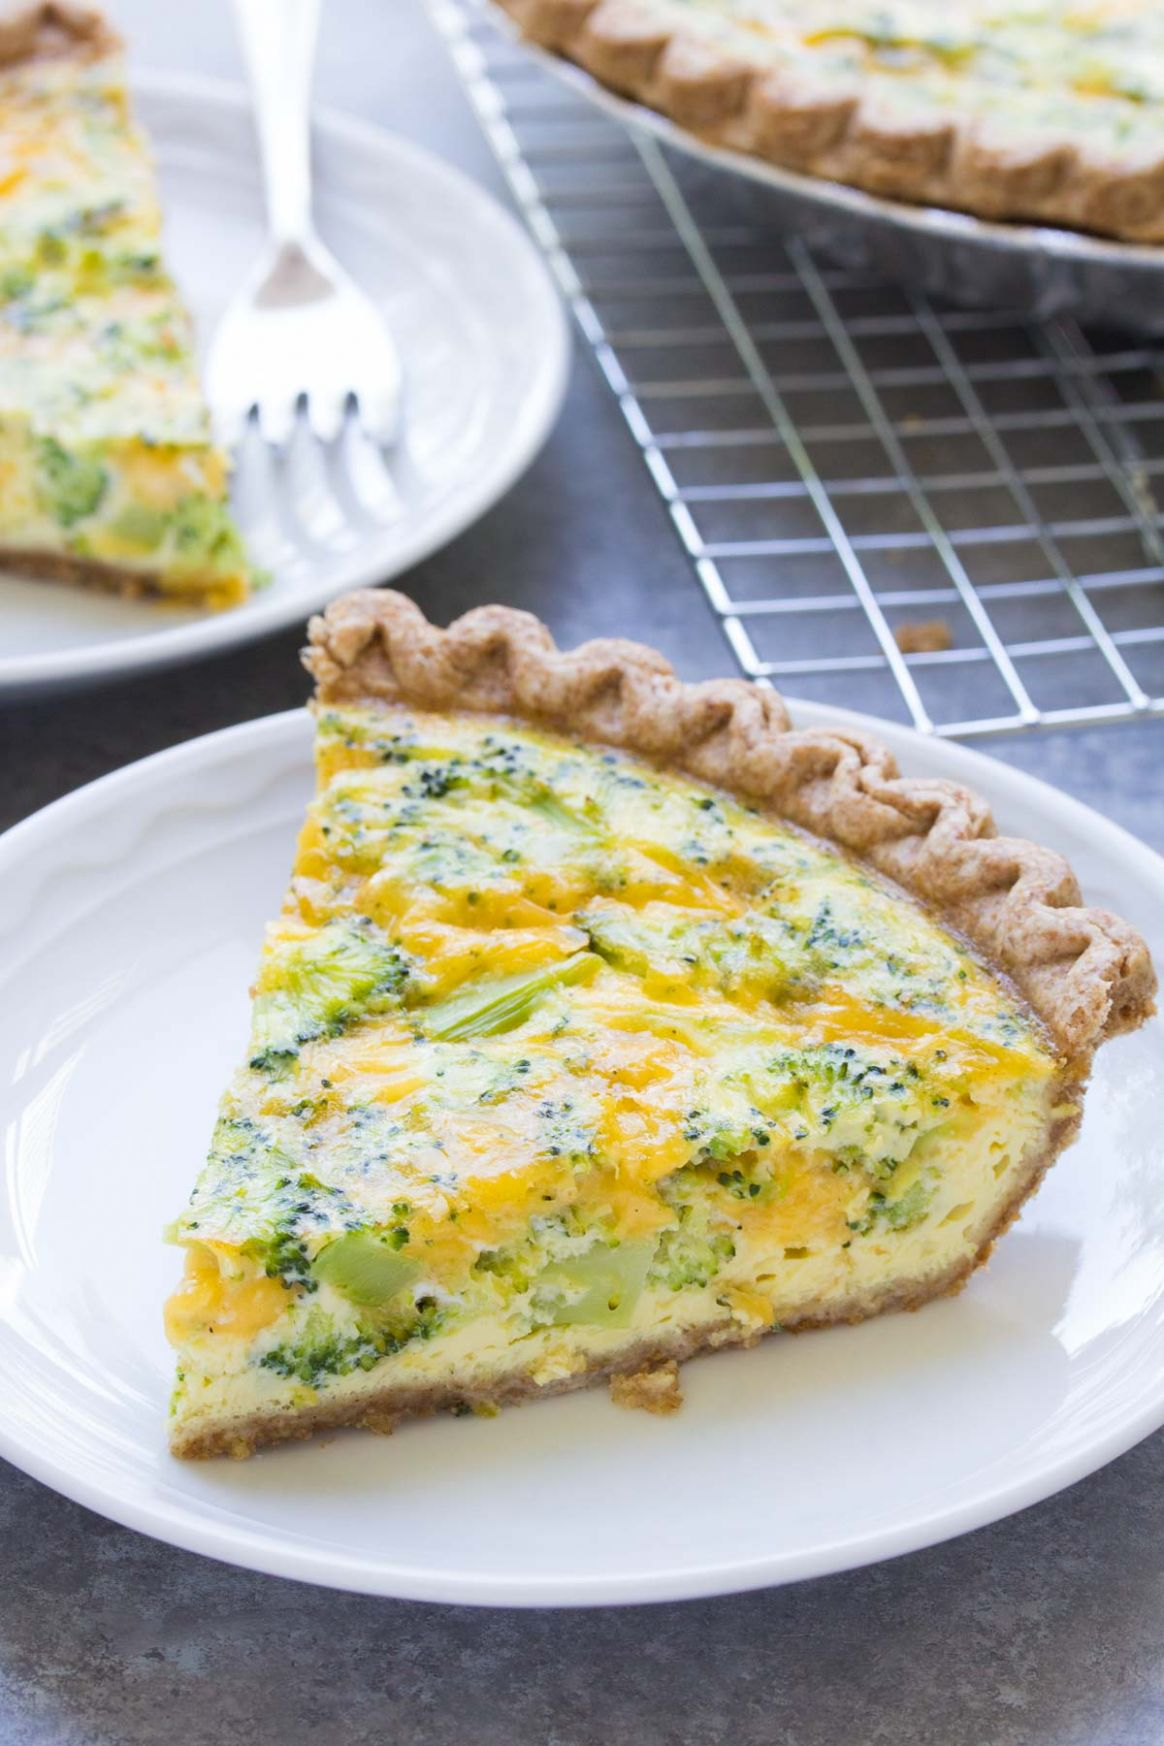 Easy Broccoli Cheese Quiche (11 Ingredients)